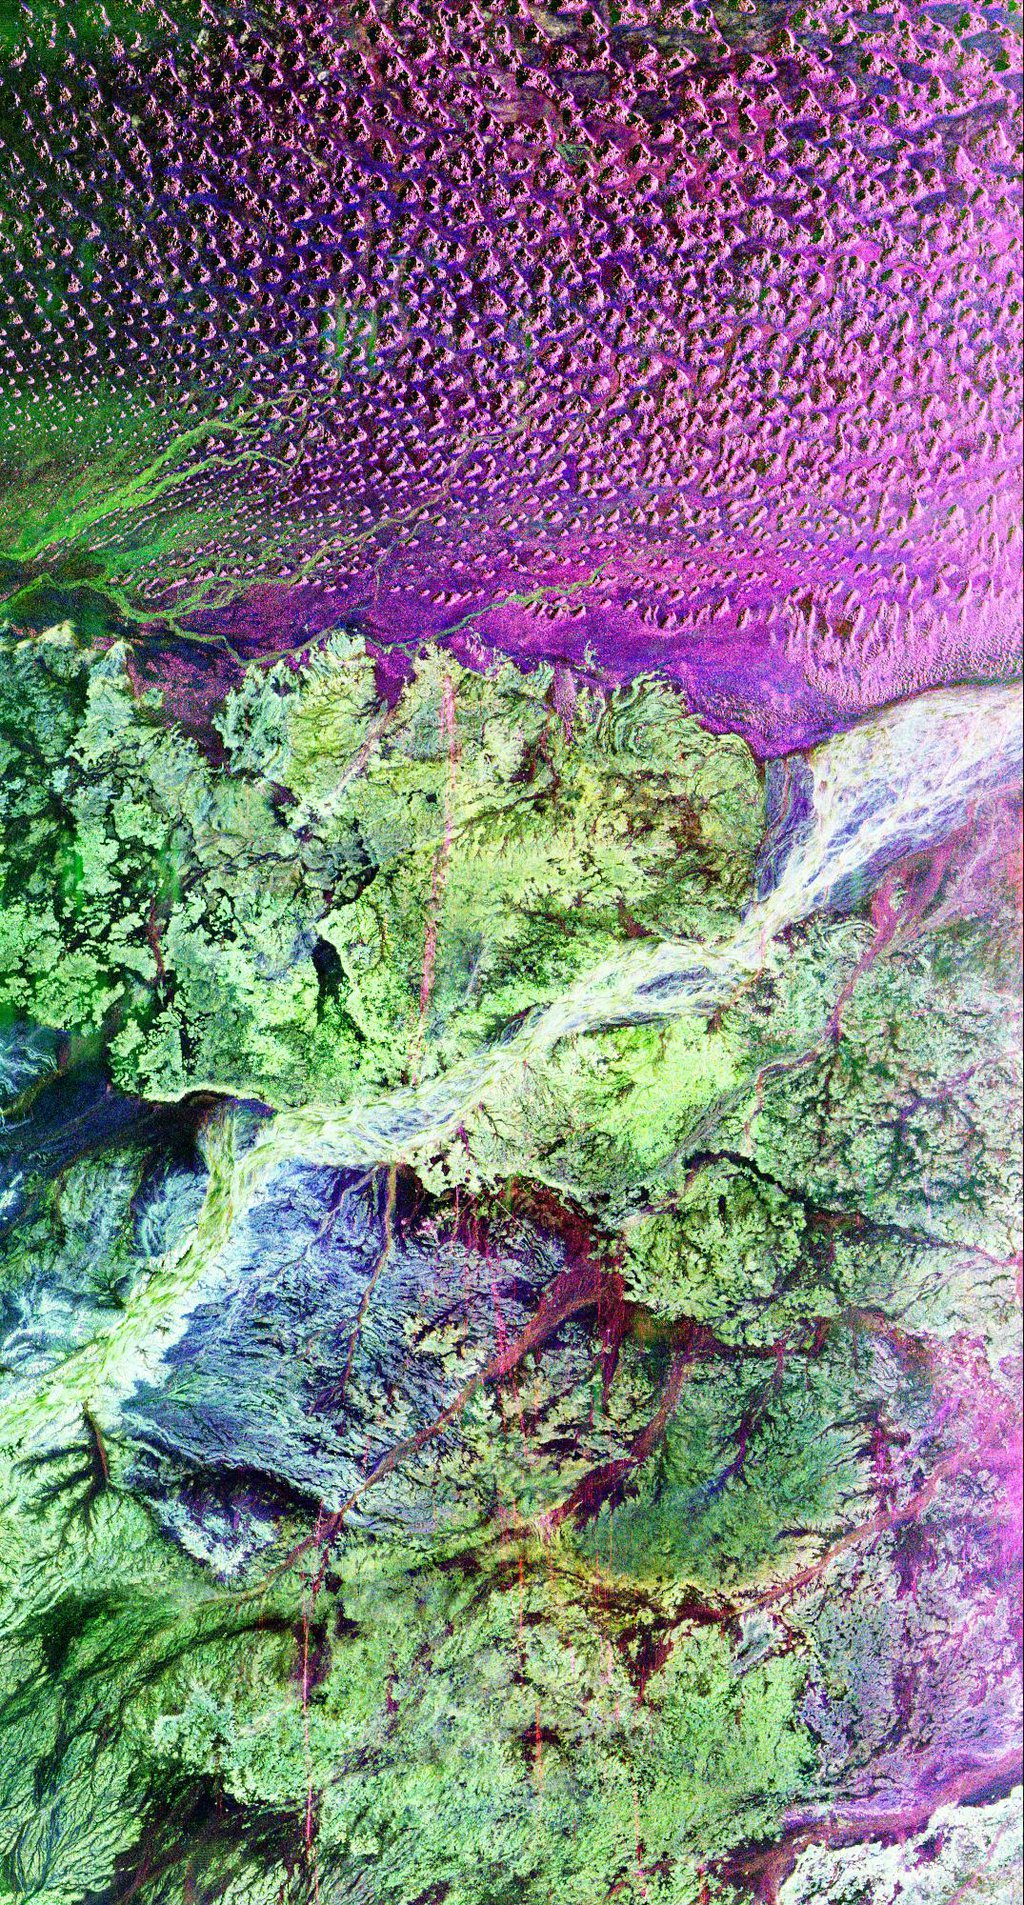 This is a radar image of the region around the site of the lost city of Ubar in southern Oman, on the Arabian Peninsula from NASA's Spaceborne Imaging Radar C/X-Band Synthetic Aperture Radar.